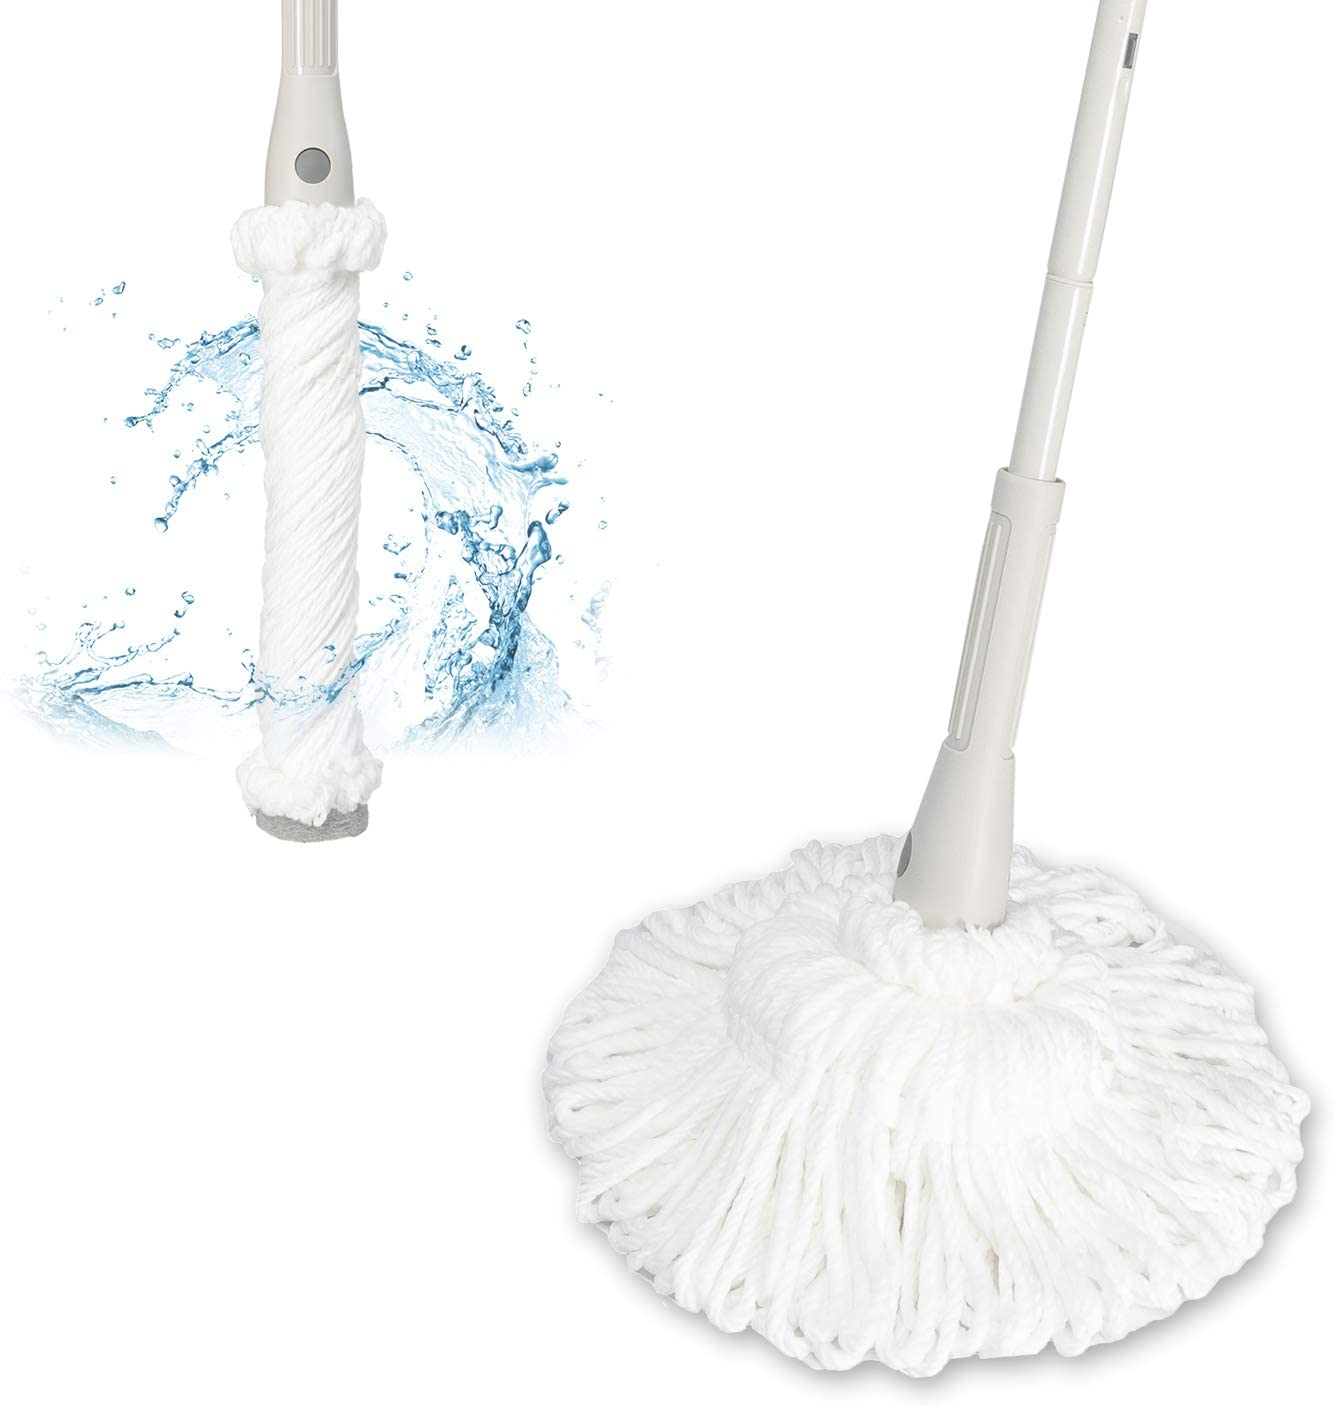 JEHONN Self-Wringing Mop, Microfiber Twist Tornado Mop for Floor Cleaning Dust Mop Metal with 2 Washable Replacements 51 Inches